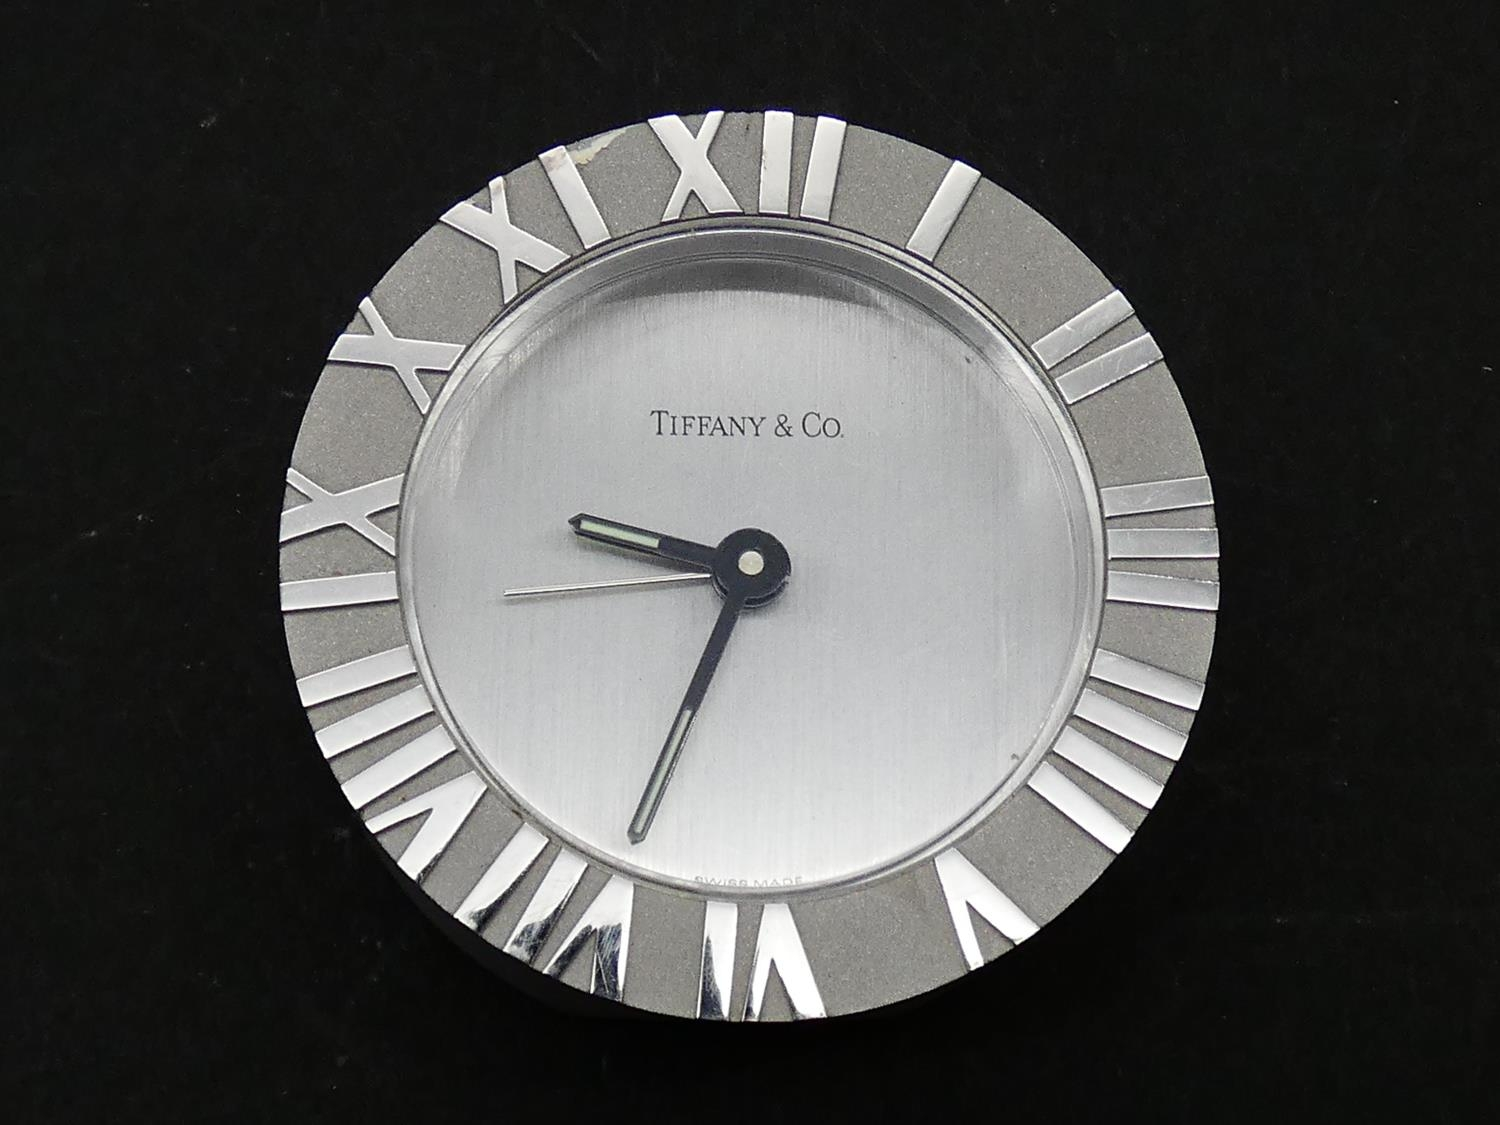 A Tiffany & Co Swiss made stainless steel Roman numeral quartz alarm clock with brushed chrome bezel